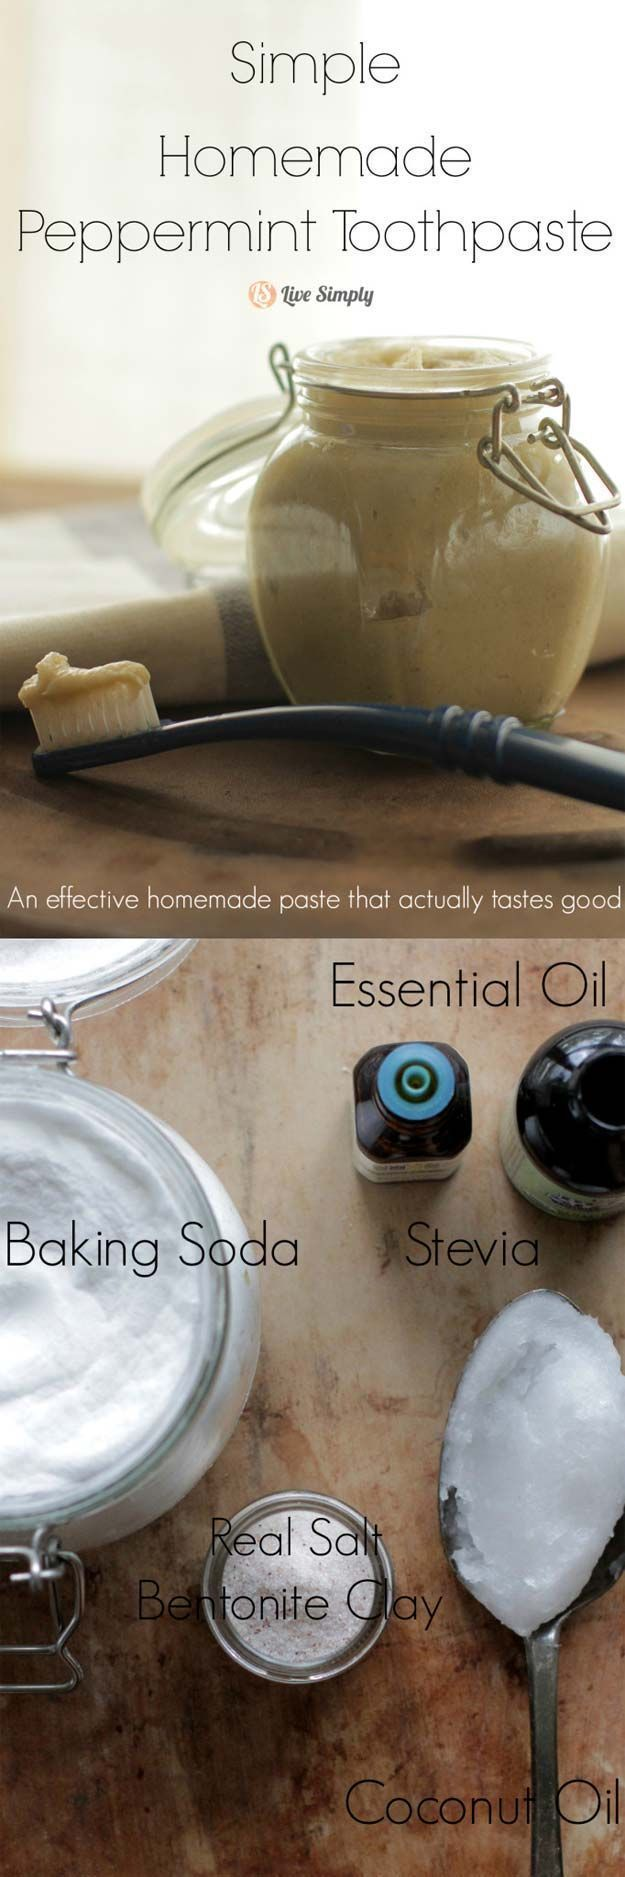 Teeth Whitening Tricks to Try at Home - Simple Homemade Peppermint Toothpaste - Awesome DIY Tips for Whitening Your Teeth At Home Using Baking Soda, Activated Charcoal, or Hydrogen Peroxide. Homemade Natural Remedies for Overnight Whitening. Some of These Use Brushes, and Some Don't, but All Are Great For Dental Health. These Beauty Tips Will Make You Say It Works! - https://thegoddess.com/teeth-whitening-tricks #HomeRemediesforTeethWhitening #whiterteeth #teethwhiteningtips